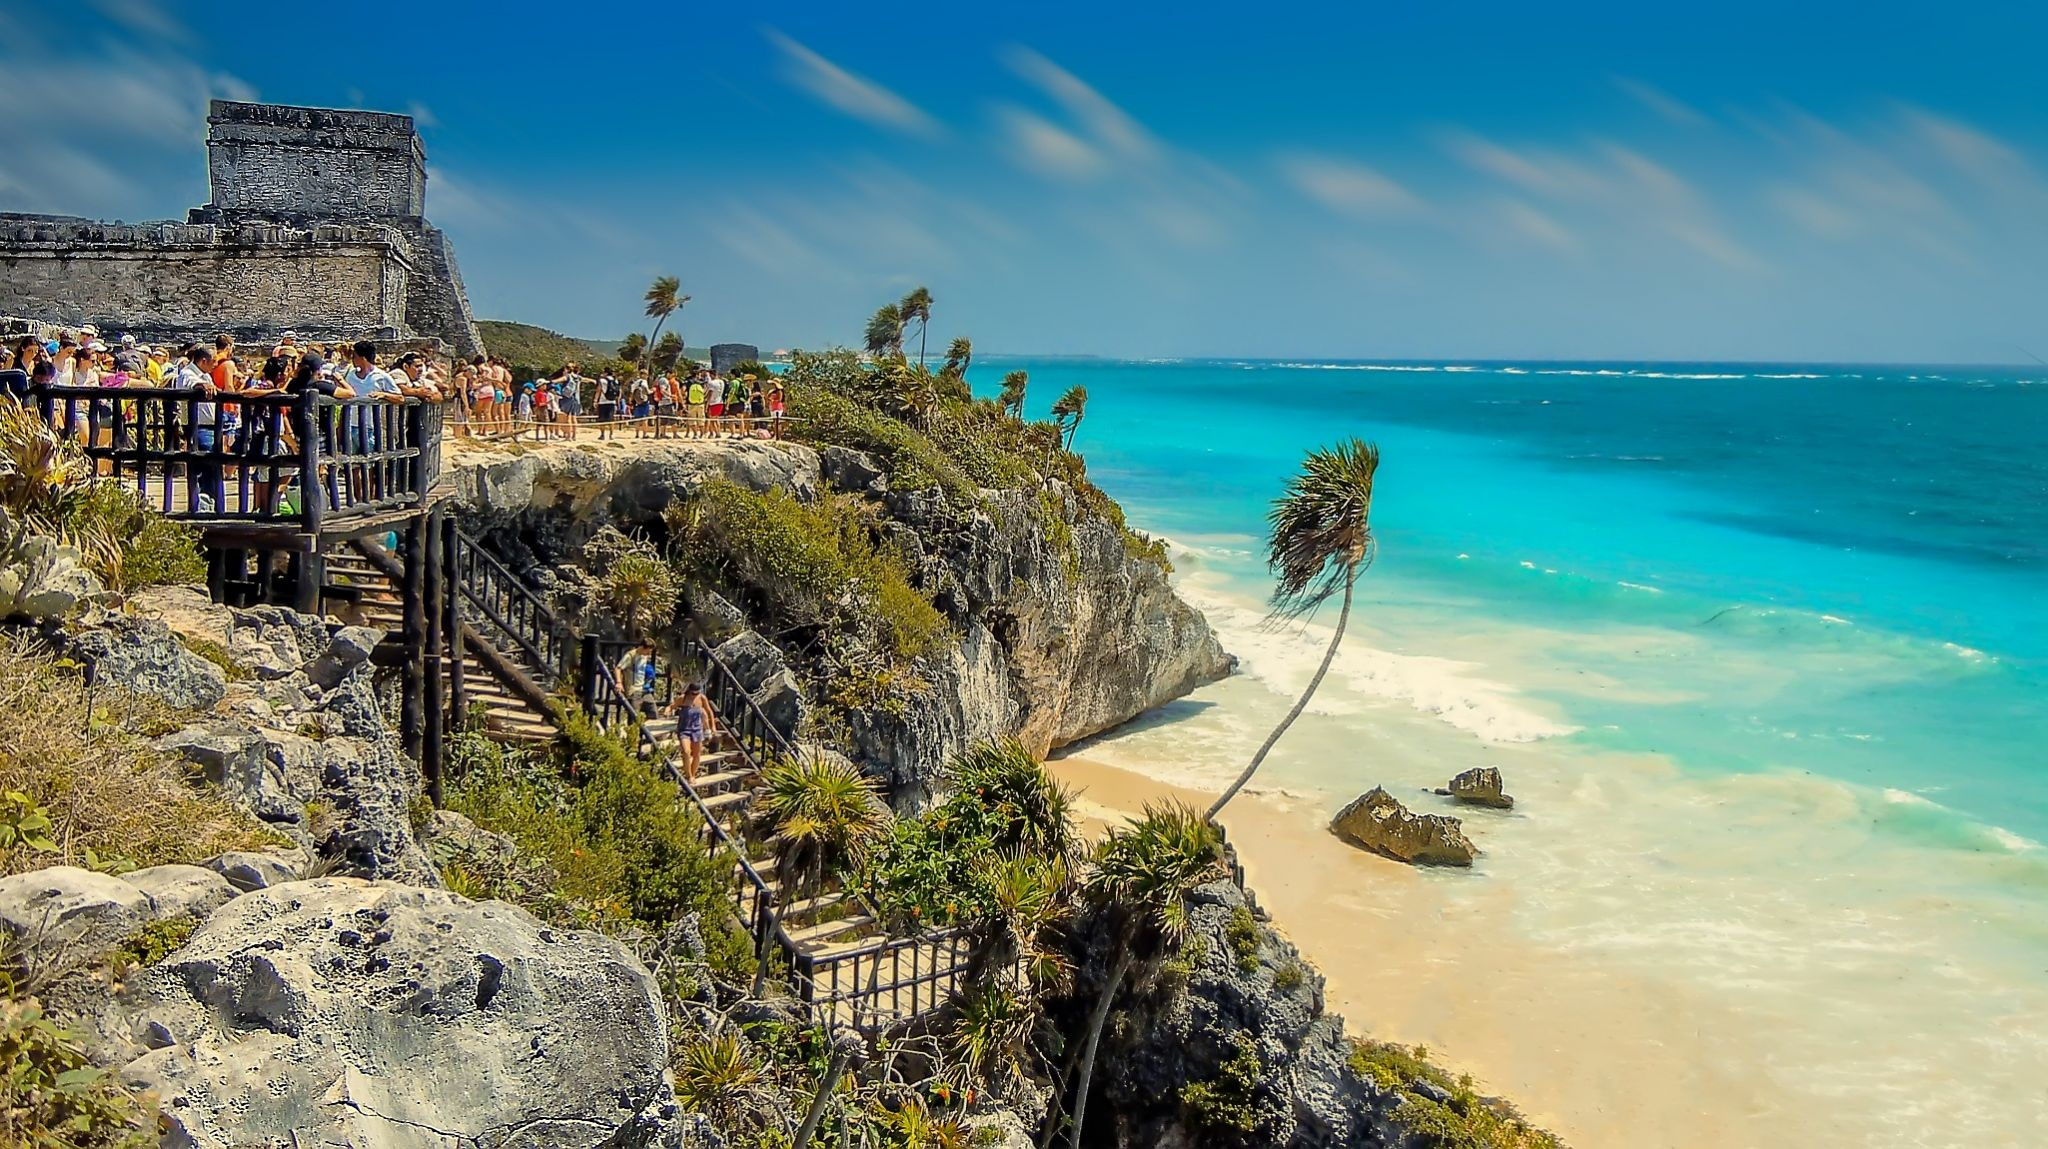 Must see places in Mexico - Tulum beach